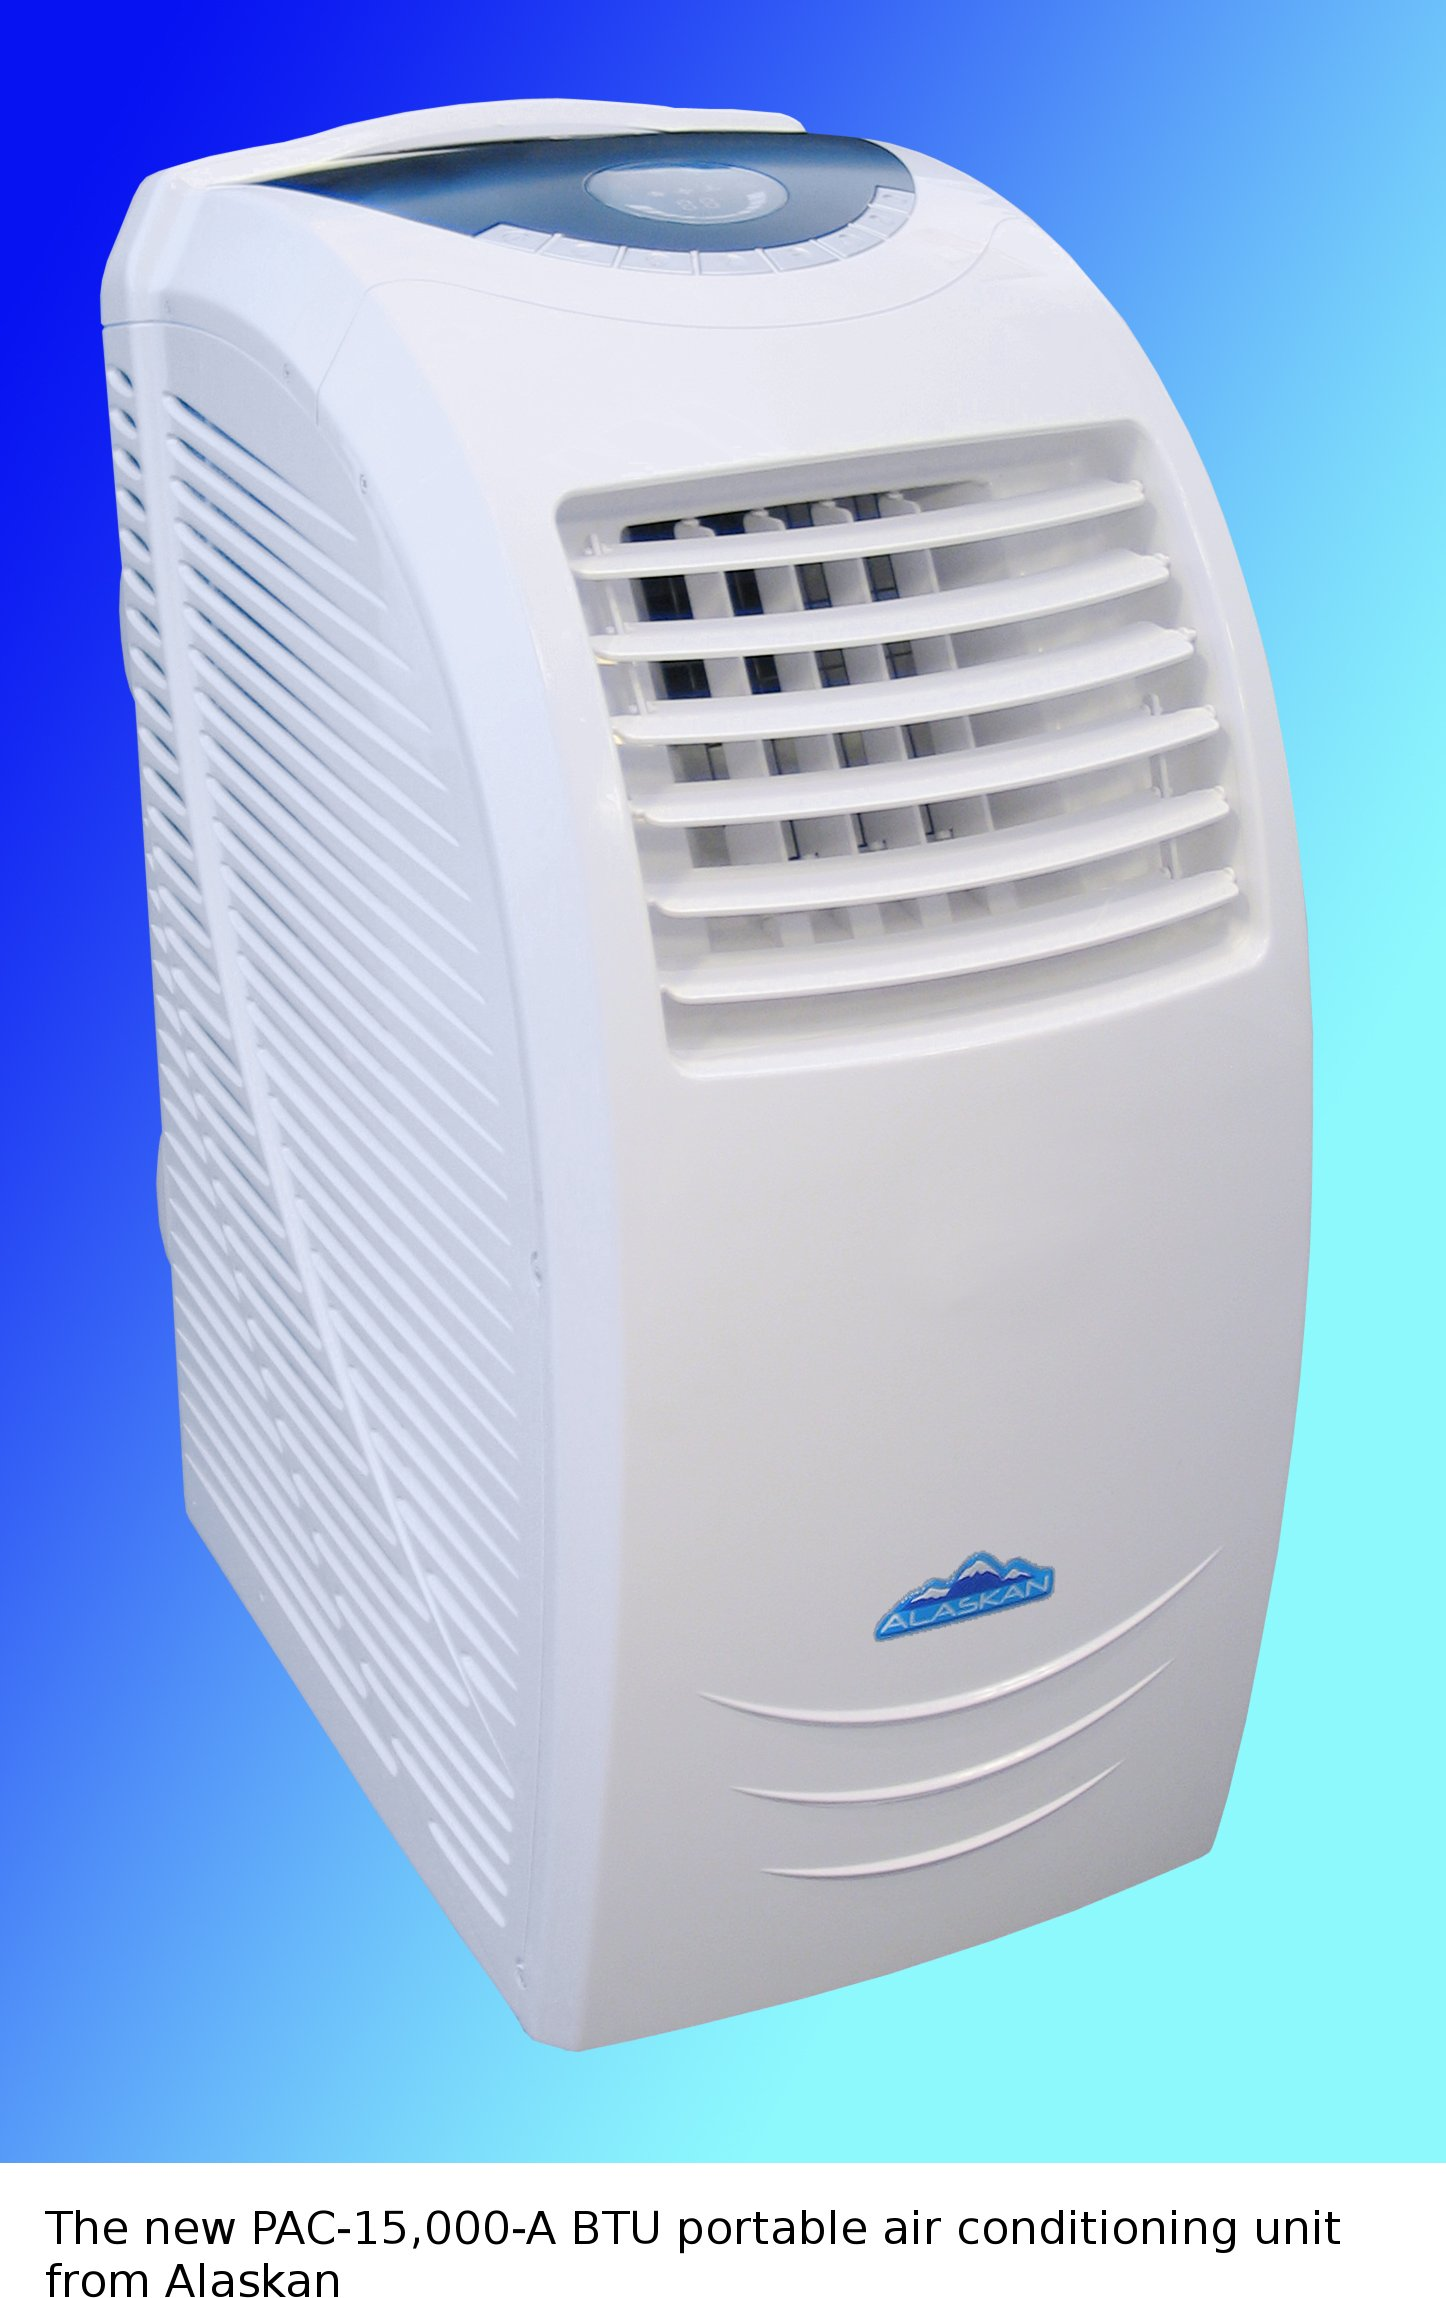 Air Conditioning Units Small Portable Air Conditioning Units Uk #091BC2